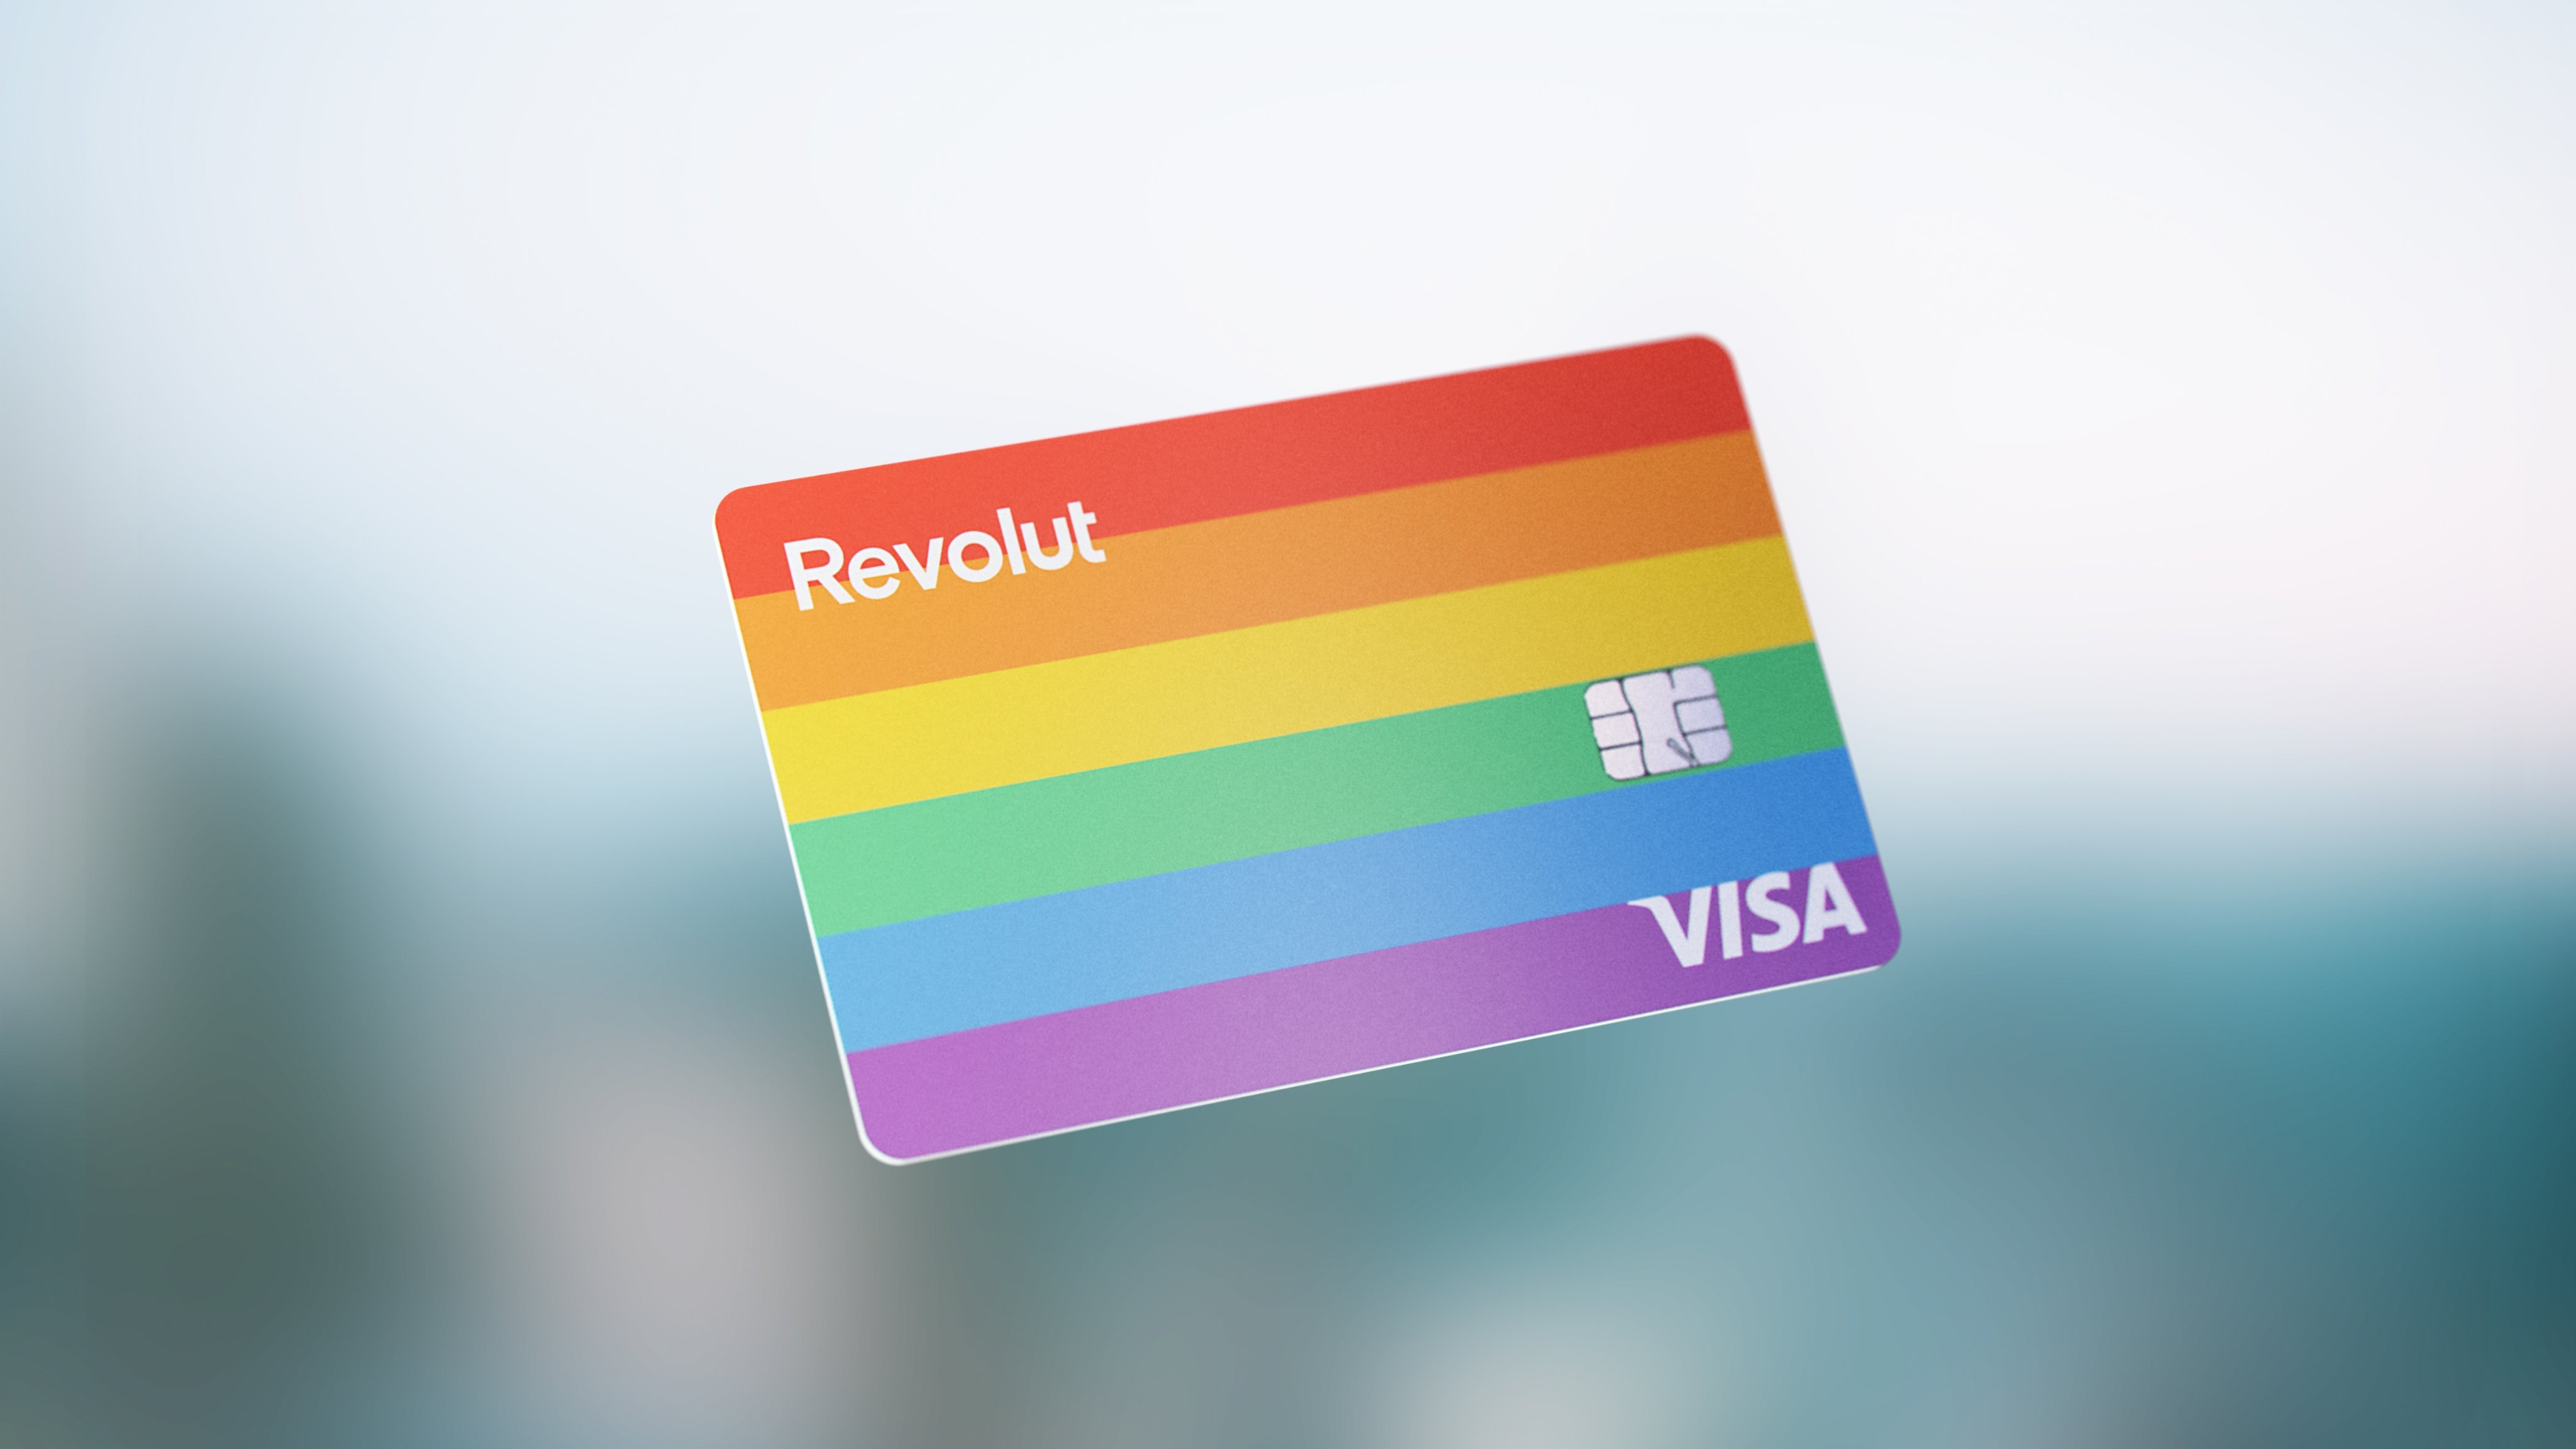 Revolut launches rainbow card to mark Pride celebrations